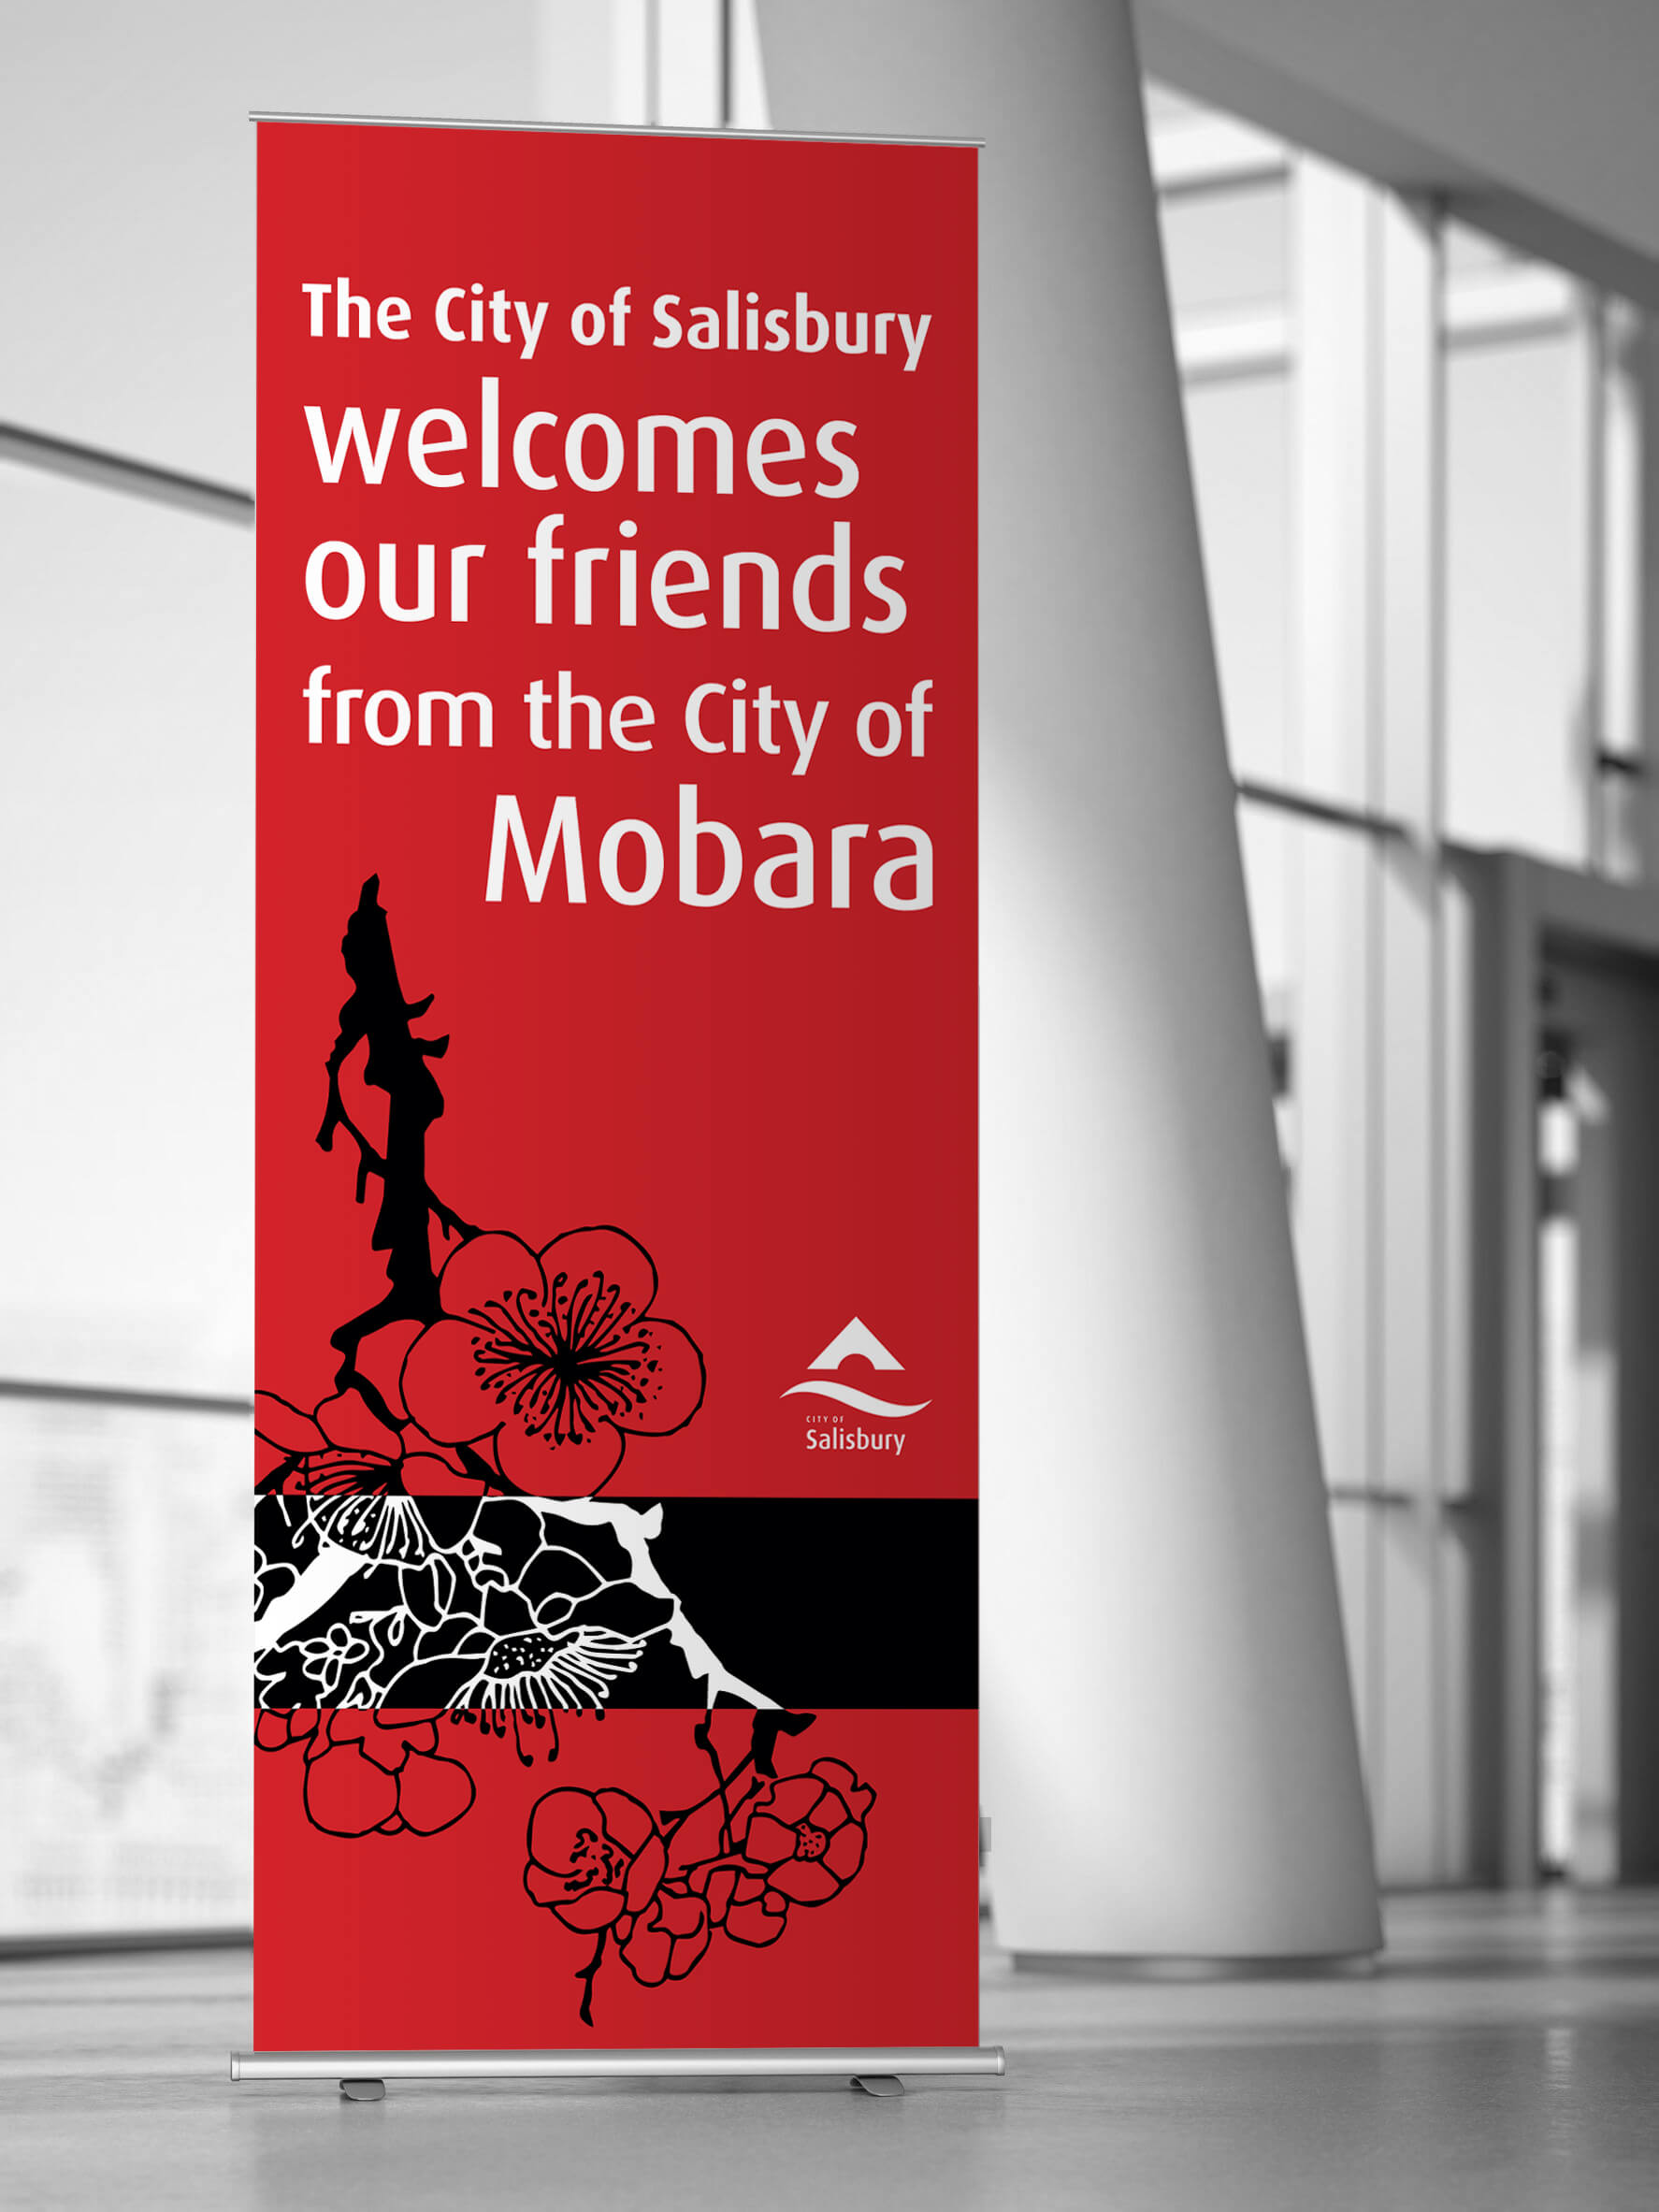 Icon Graphic Design Adelaide - business card design page image of City of Salisbury Mobara pull-up display.